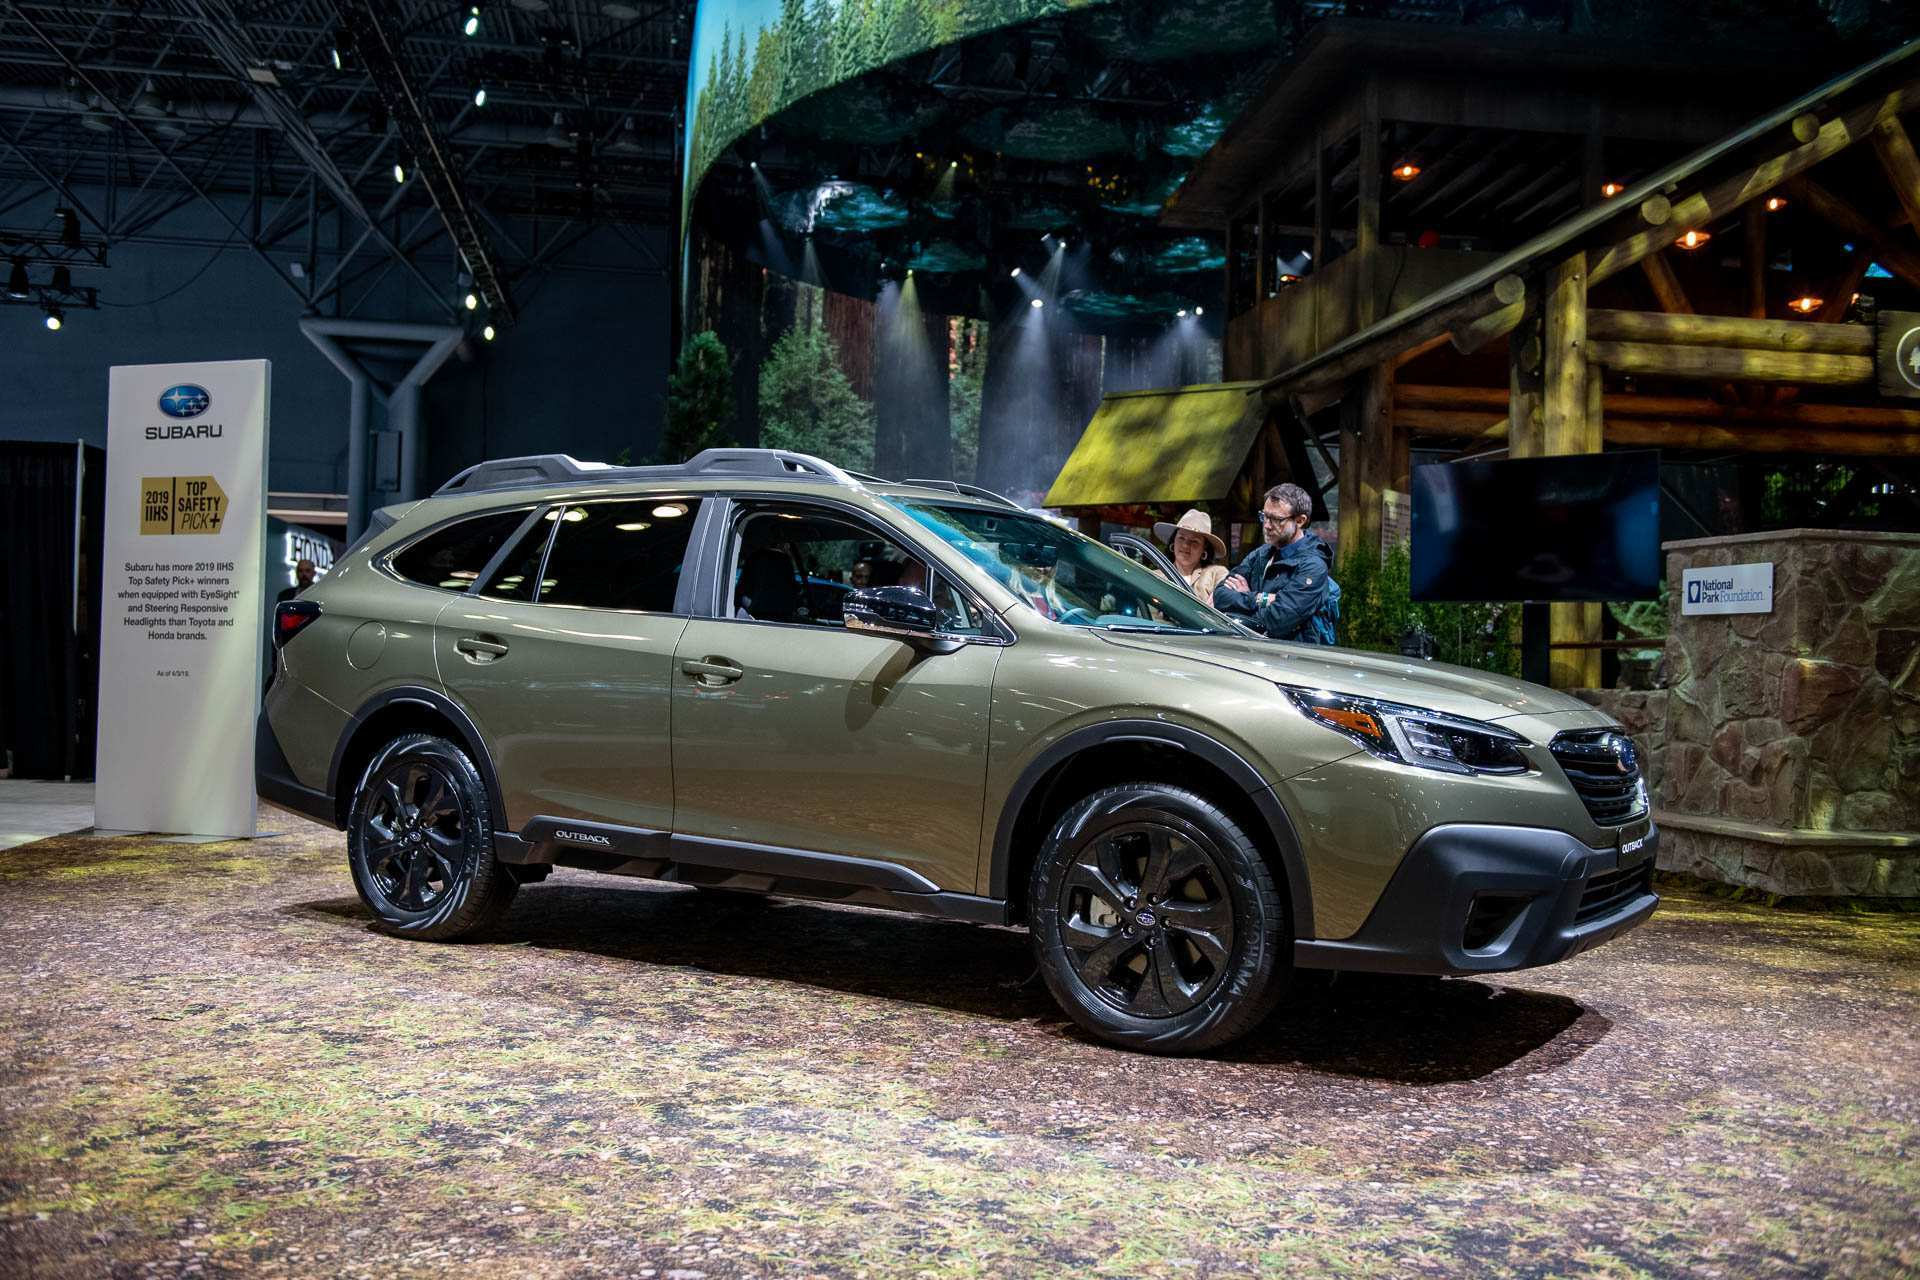 97 New 2020 Subaru Outback Photos Research New